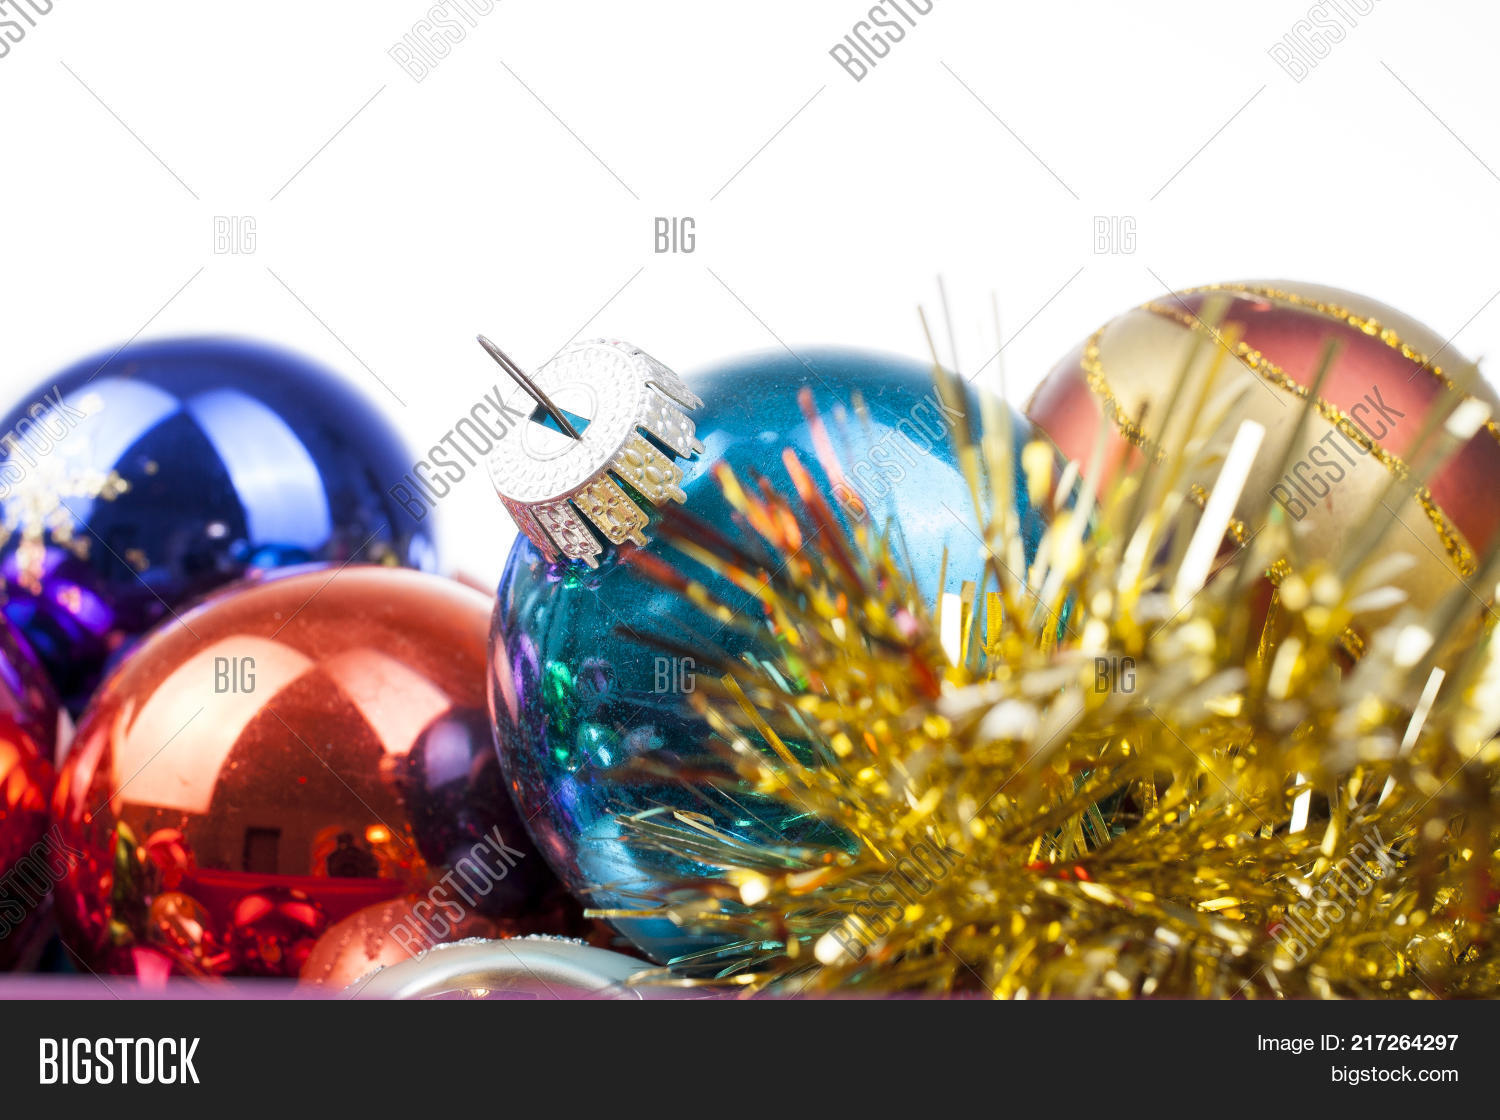 Christmas Bauble Image Photo Free Trial Bigstock